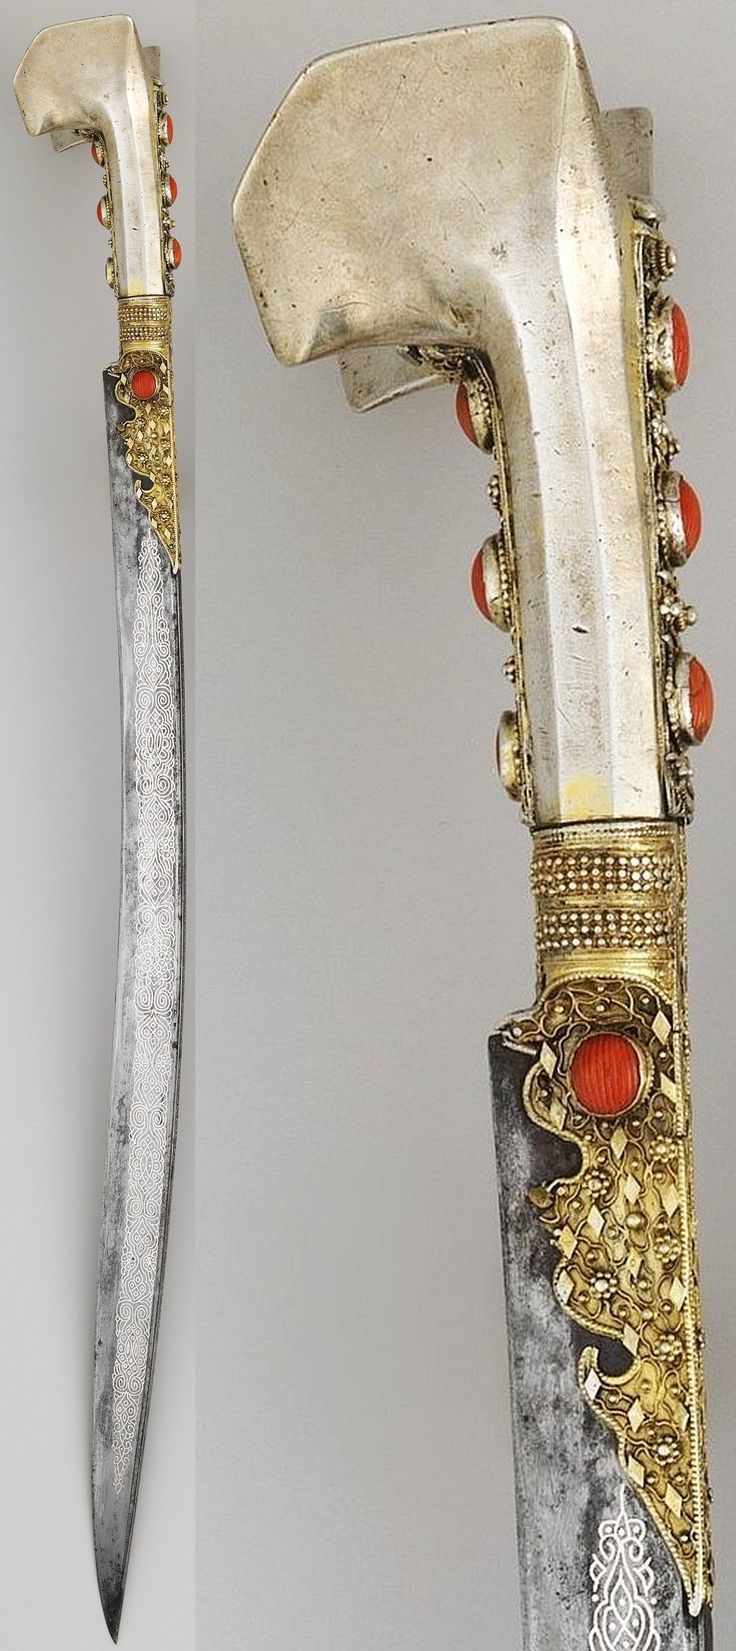 Ottoman (Anatolian or Balkan) yatagan / yataghan, dated 1802–3, steel, silver, gold, coral, Length 29 in. (73.66 cm) Length of blade, 23 1/8 in. (58.72 cm), Met Museum. The yatagan was popular throughout the Ottoman Empire. It is distinguished by a single-edged blade that curves slightly inward and by a hilt with no guard and two flared wings at the pommel.